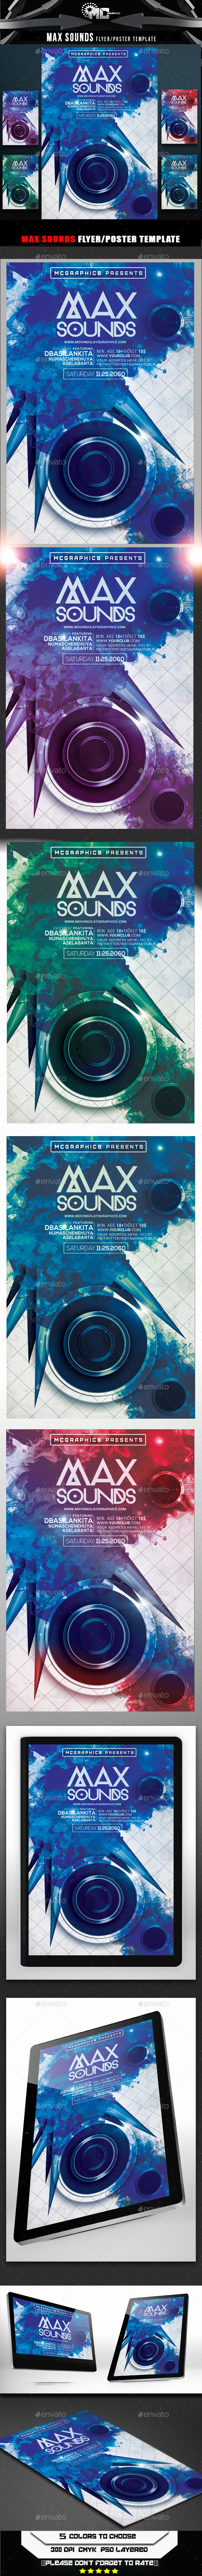 Max Sounds Flyer Template - Flyers Print Templates